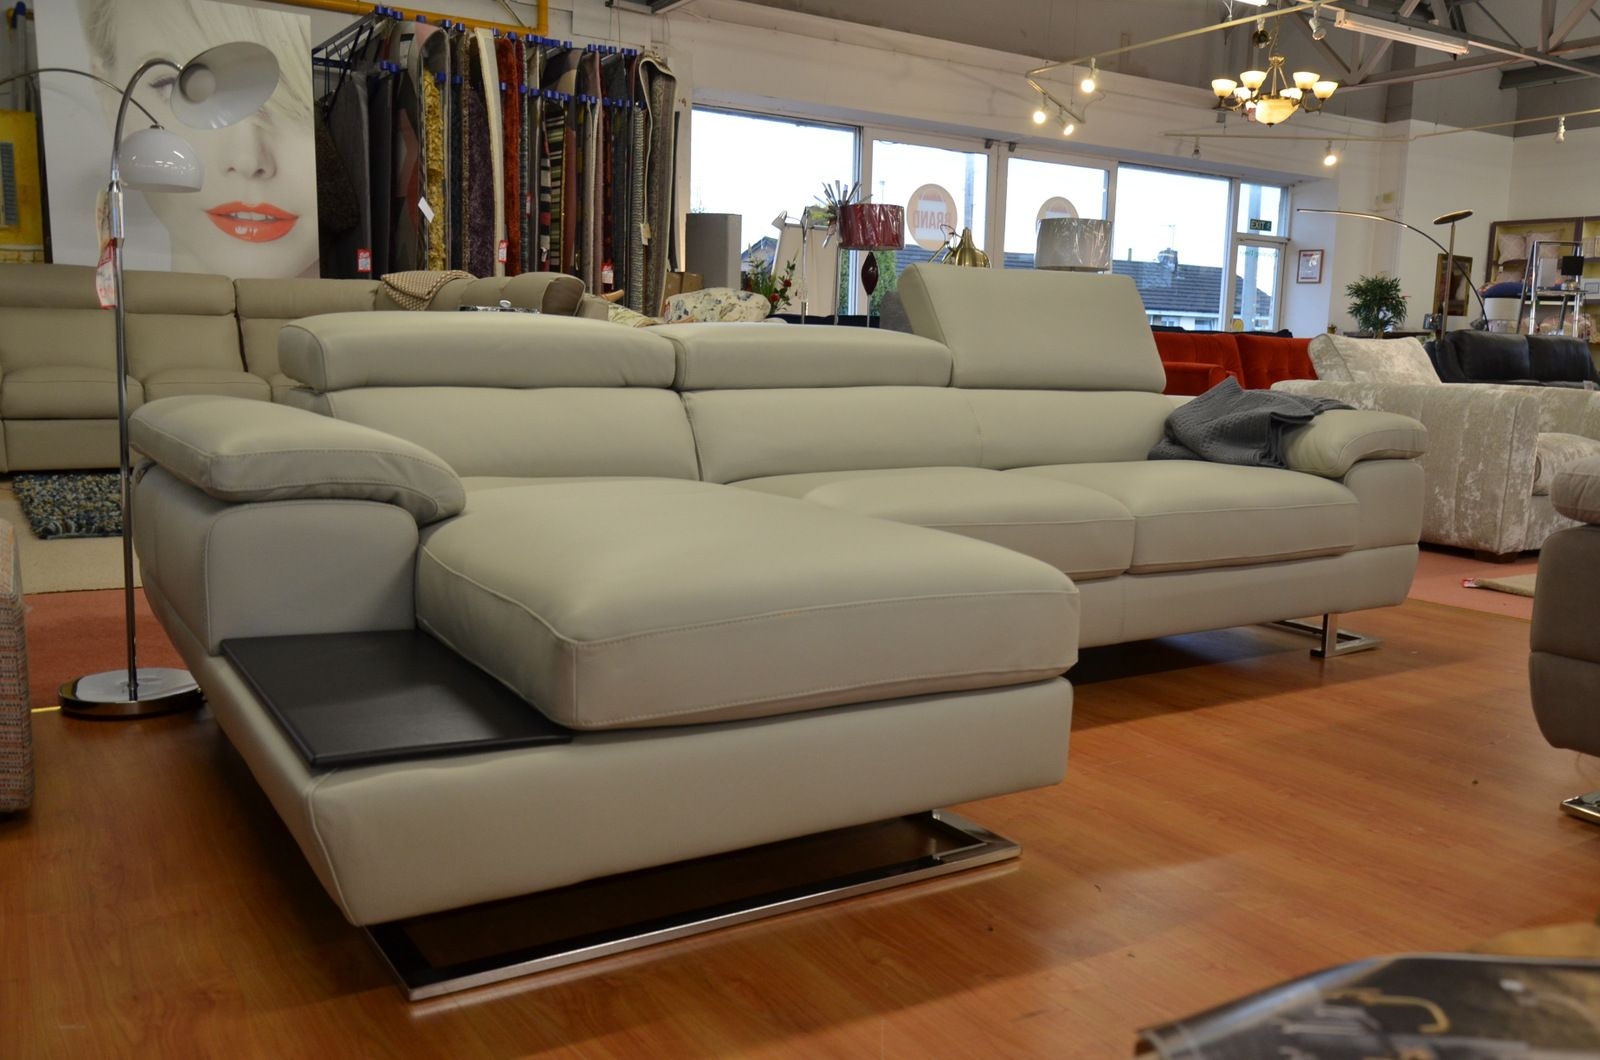 Designer Sofas Feroce Large Chaise Sofa In Luxury Grey Leather With Adjustable Headrests